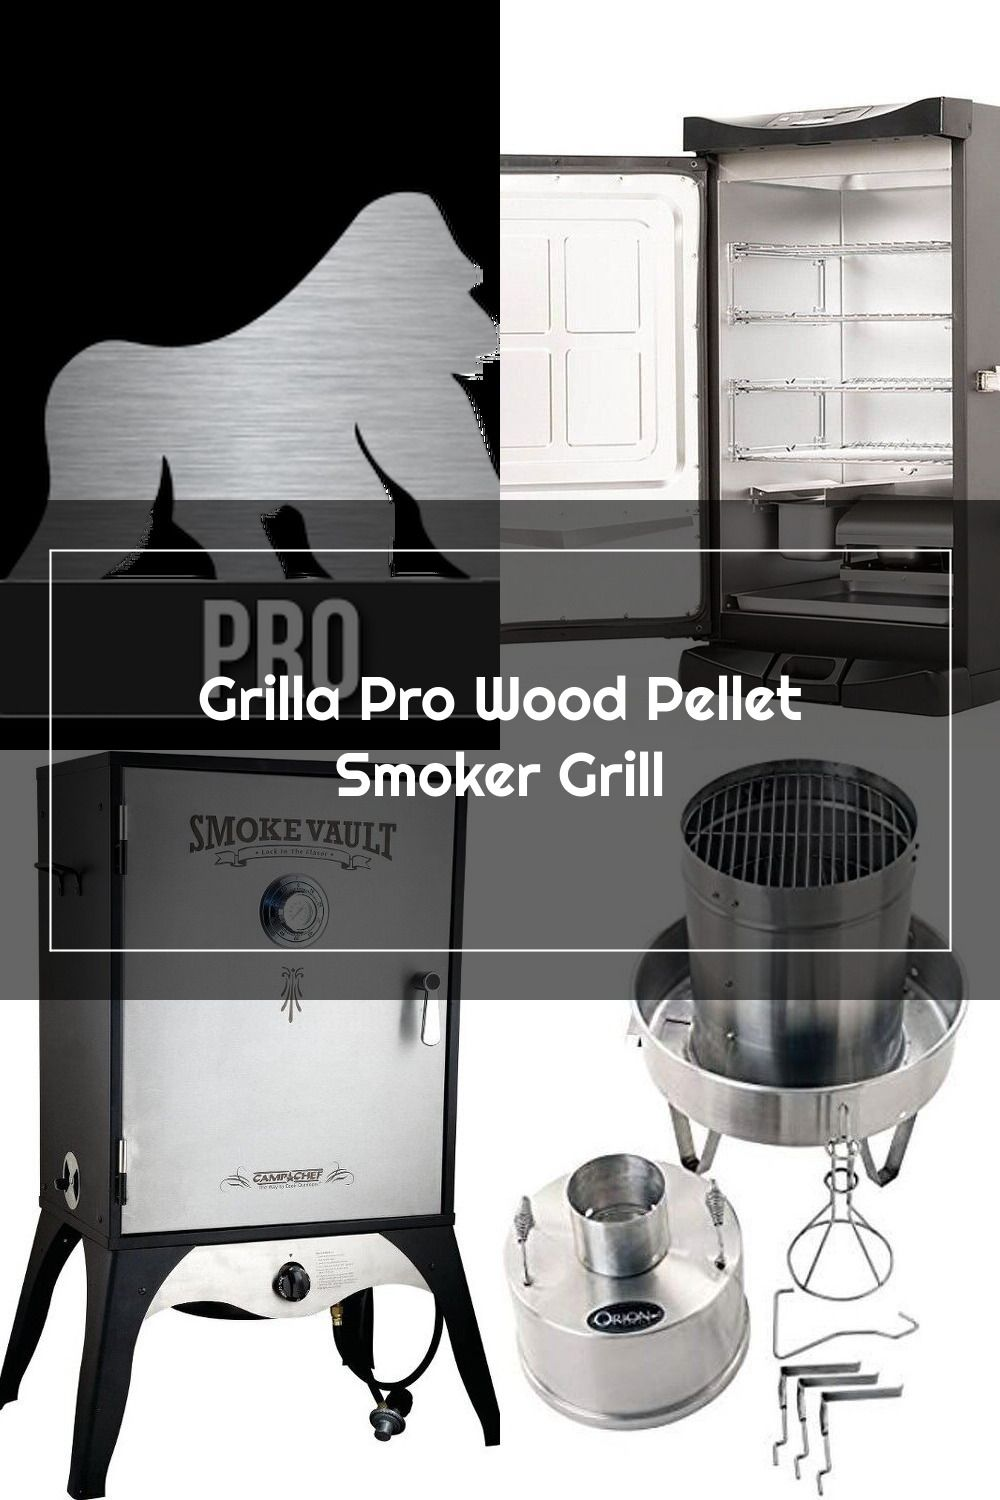 Top Rated Wood Pellet Smoker Grill - Grilla Grills in 2020 ...